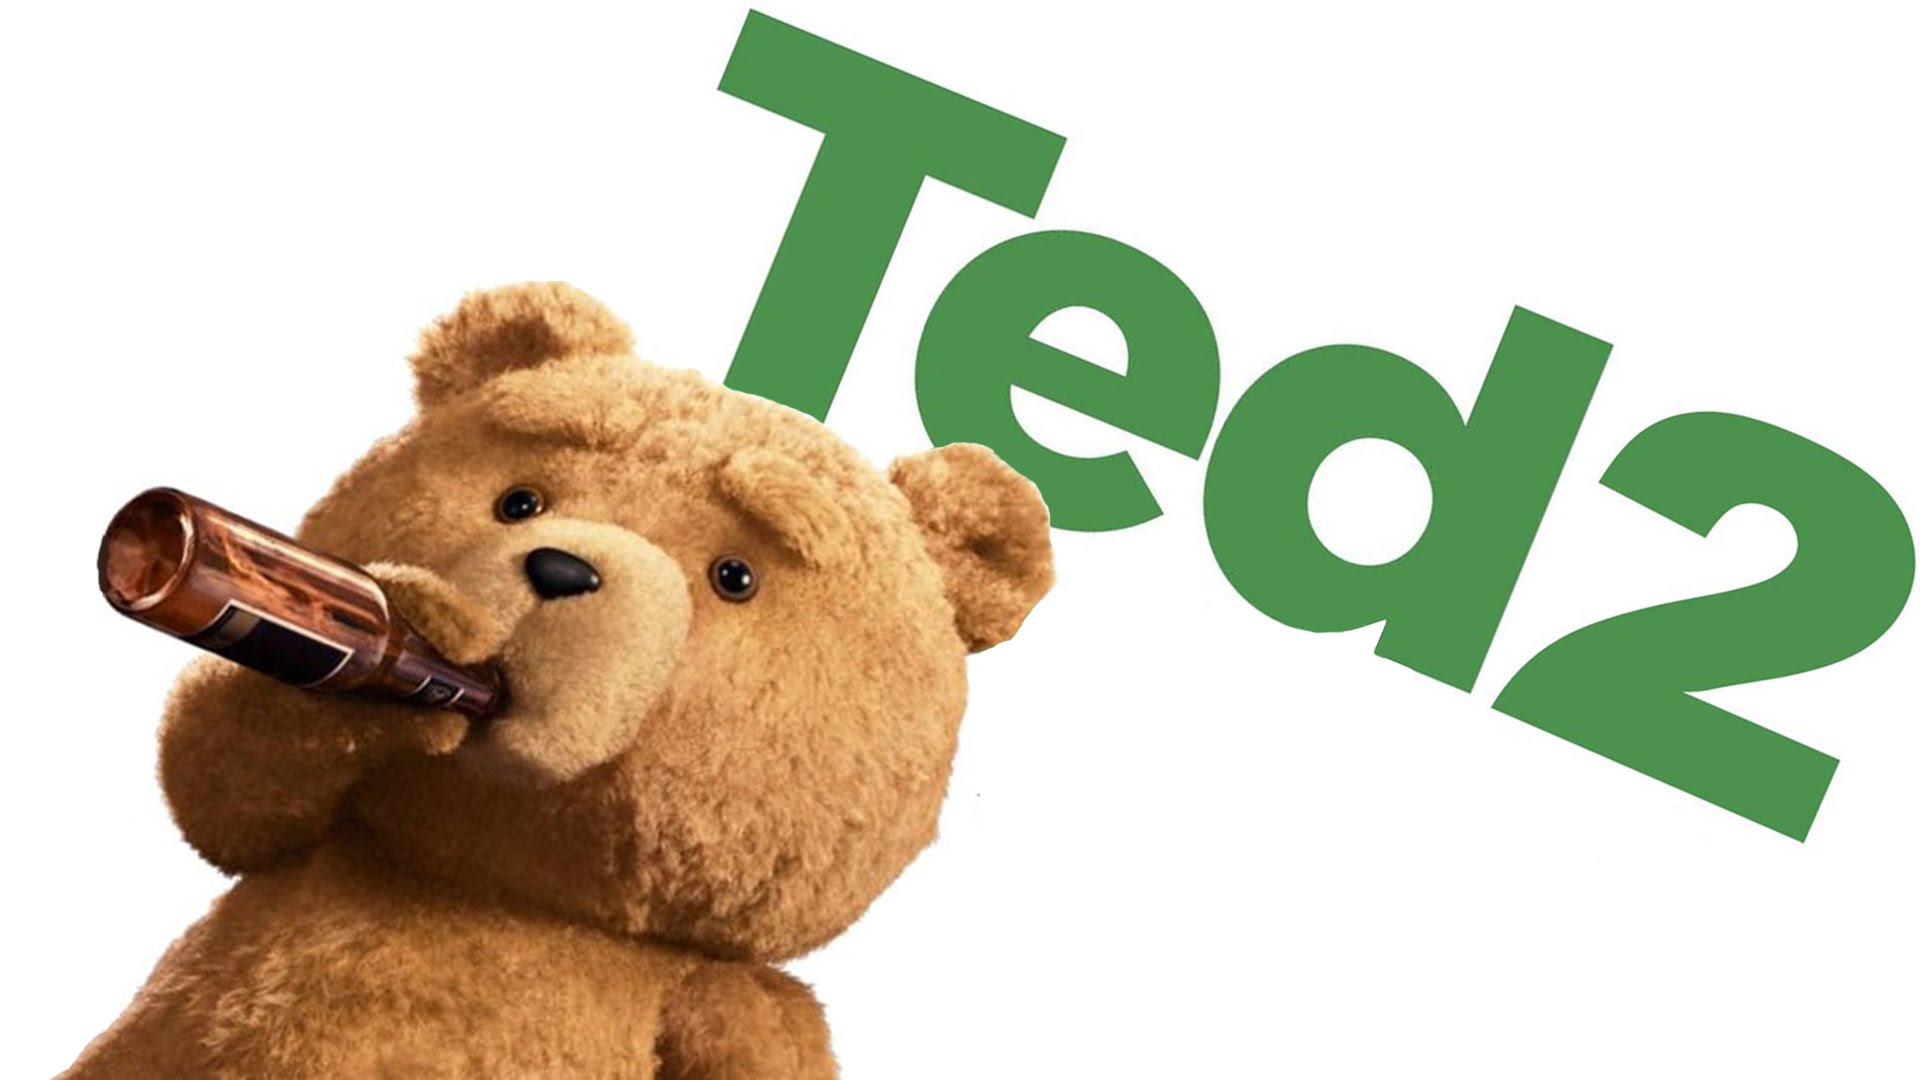 Ted-2 (1)